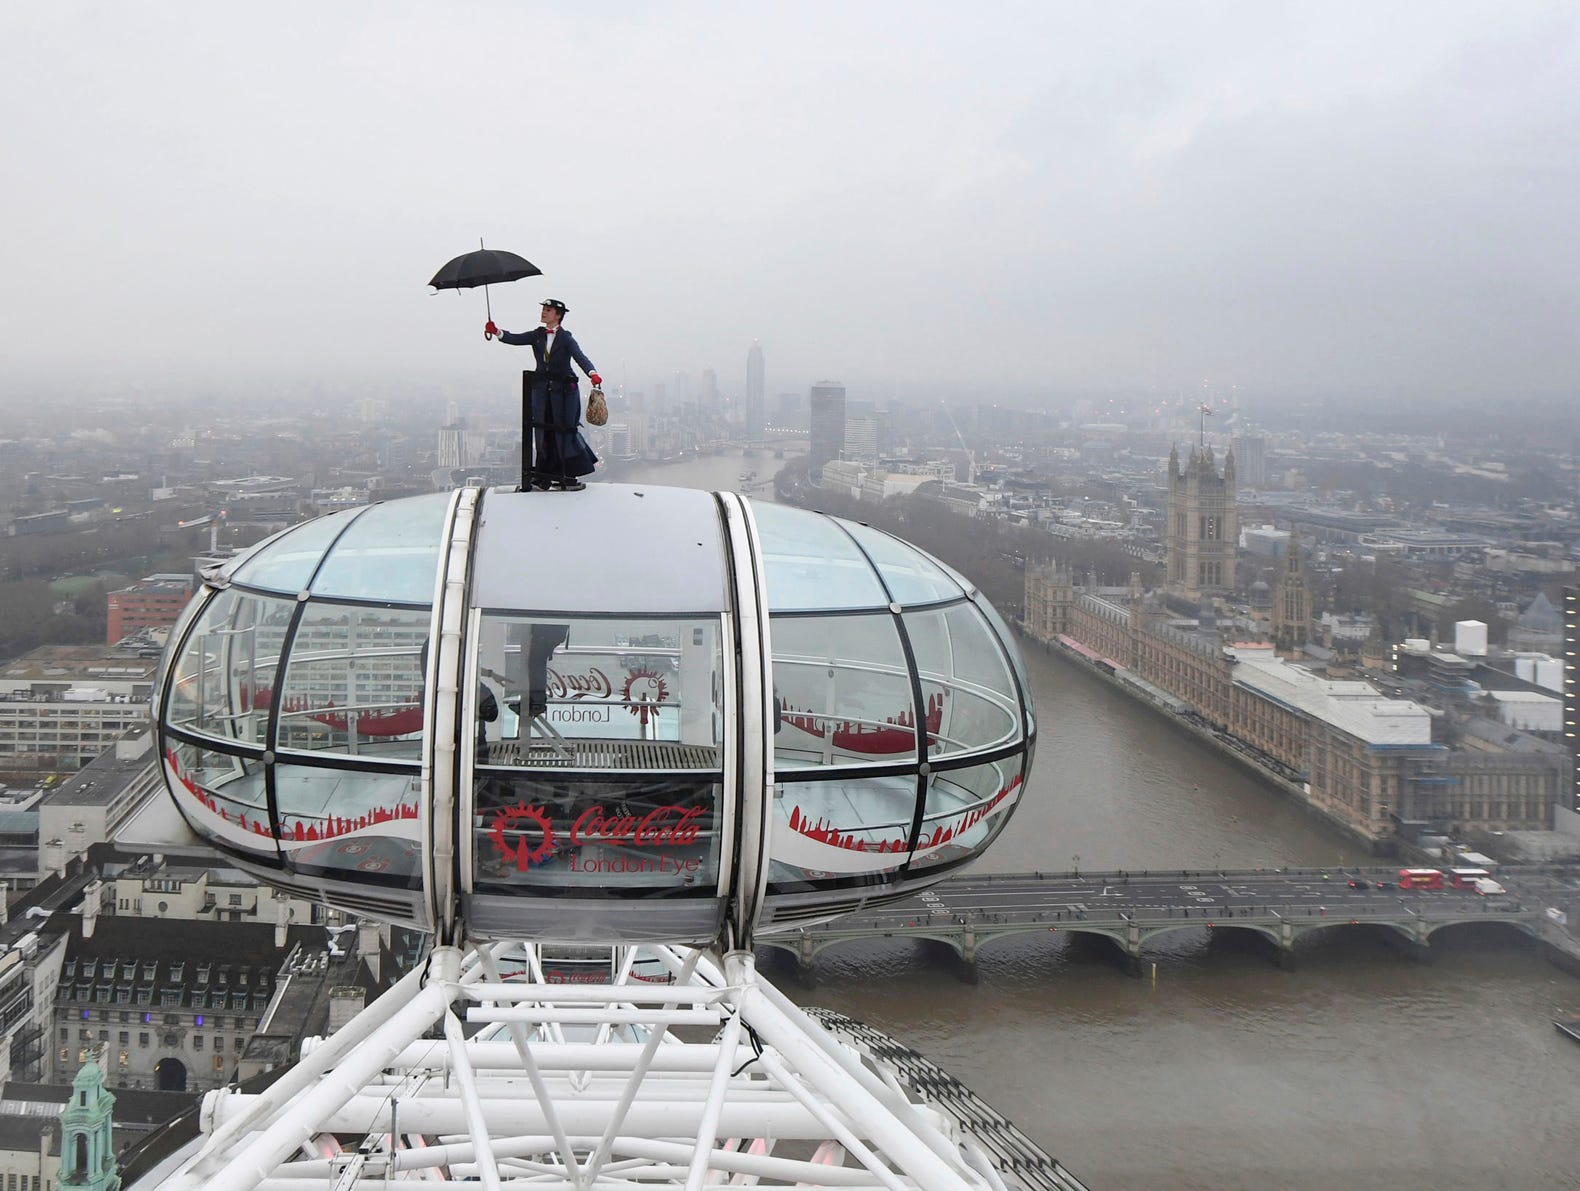 Ahead of the European movie premiere of Mary Poppins Returns, a Mary Poppins stunt double rides atop of the London Eye in central London with the Houses of Parliament on the banks of the River Thames, right, Wednesday Dec. 12, 2018. (Joe Giddens/PA via AP)